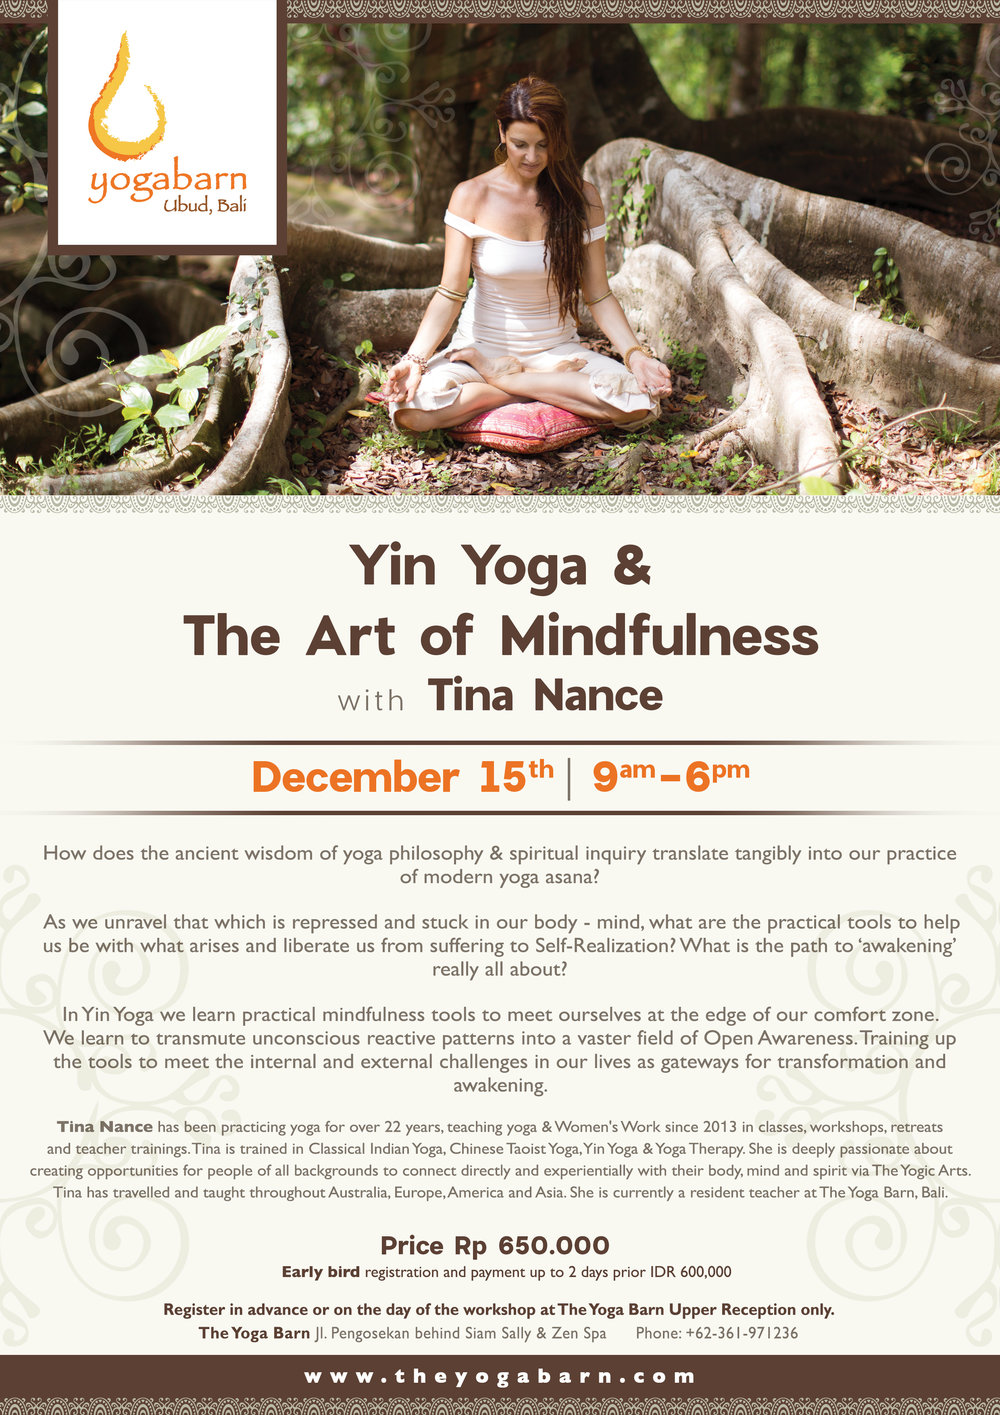 - Yin Yoga & The Art of MindfulnessDecember 15, 2018 at 9:00am - 6:00pmRp 650,000. Early Bird registration and payment up to 2 days prior Rp 600,000How does the ancient wisdom of yoga philosophy & spiritual inquiry translate tangibly into our practice of modern yoga asana?As we unravel that which is repressed and stuck in our body-mind, what are the practical tools to help us be with what arises and liberate us from suffering to Self-Realization? What is the path to 'awakening' really all about?In Yin Yoga we learn practical mindfulness tools to meet ourselves at the edge of our comfort zone. We learn to transmute unconscious reactive patterns into a vaster field of Open Awareness. Training up the tools to meet the internal and external challenges in our lives as gateways for transformation and awakening.